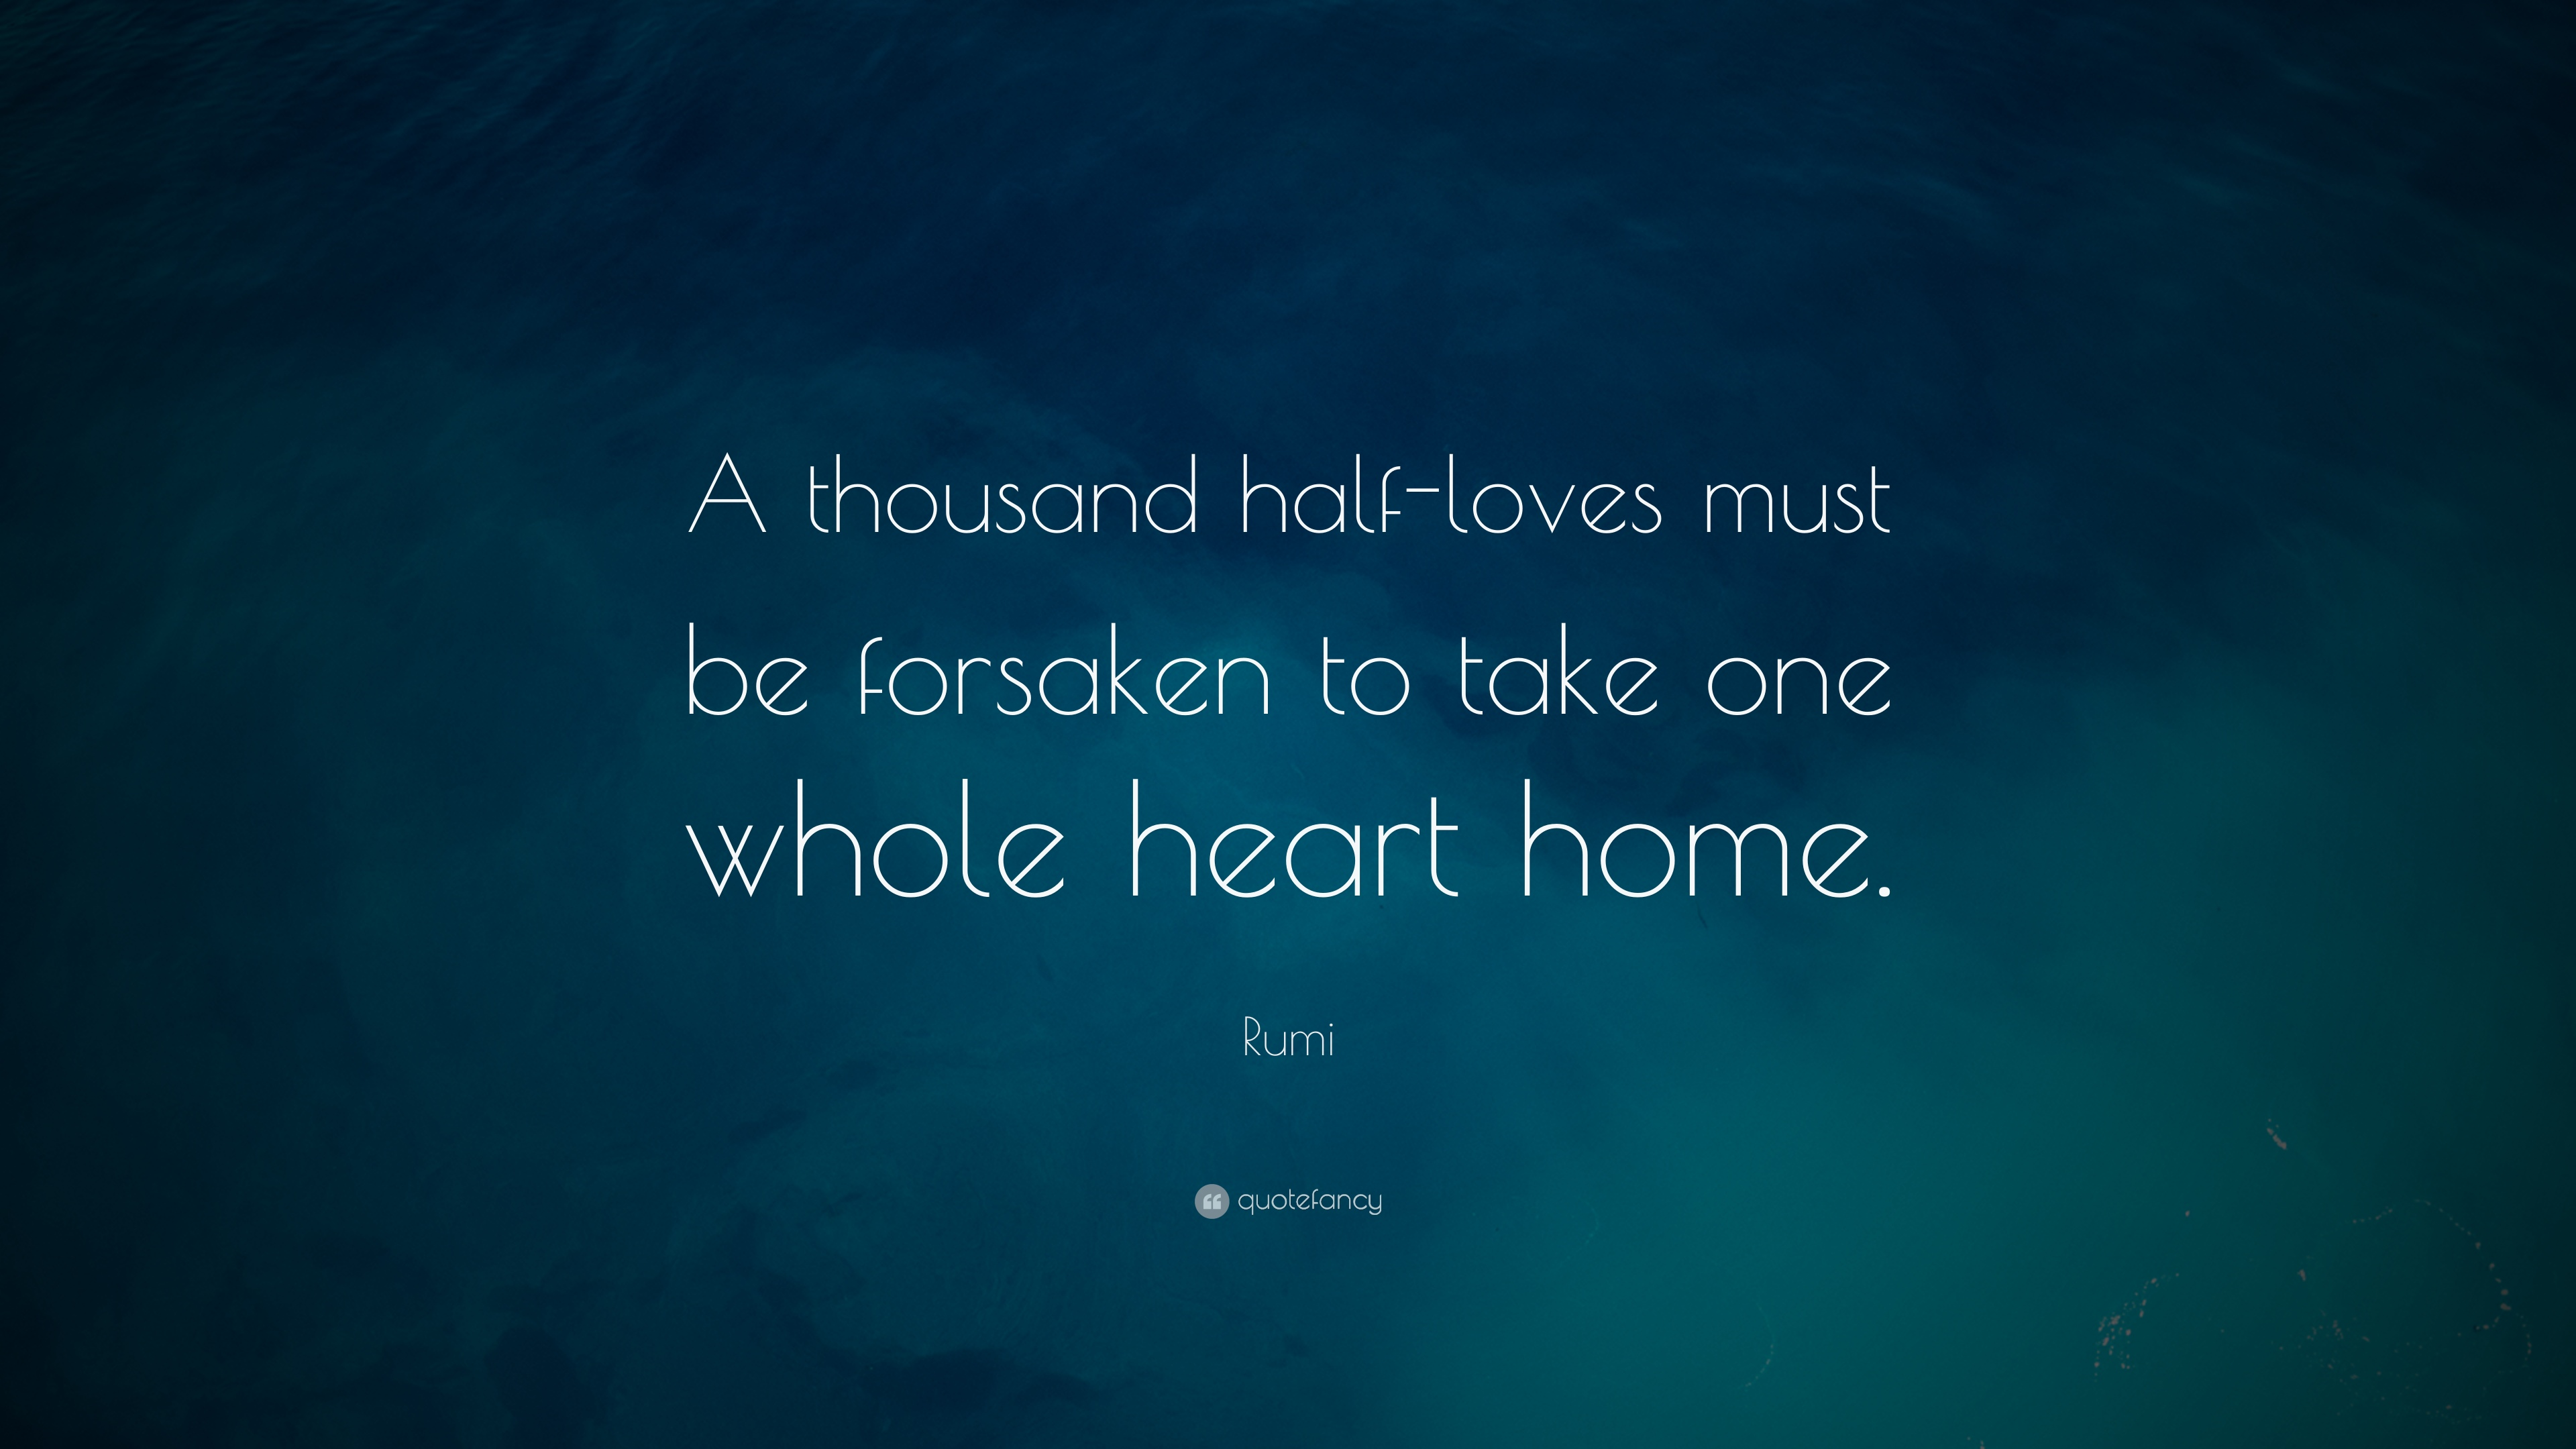 Rumi Quotes Life And Love